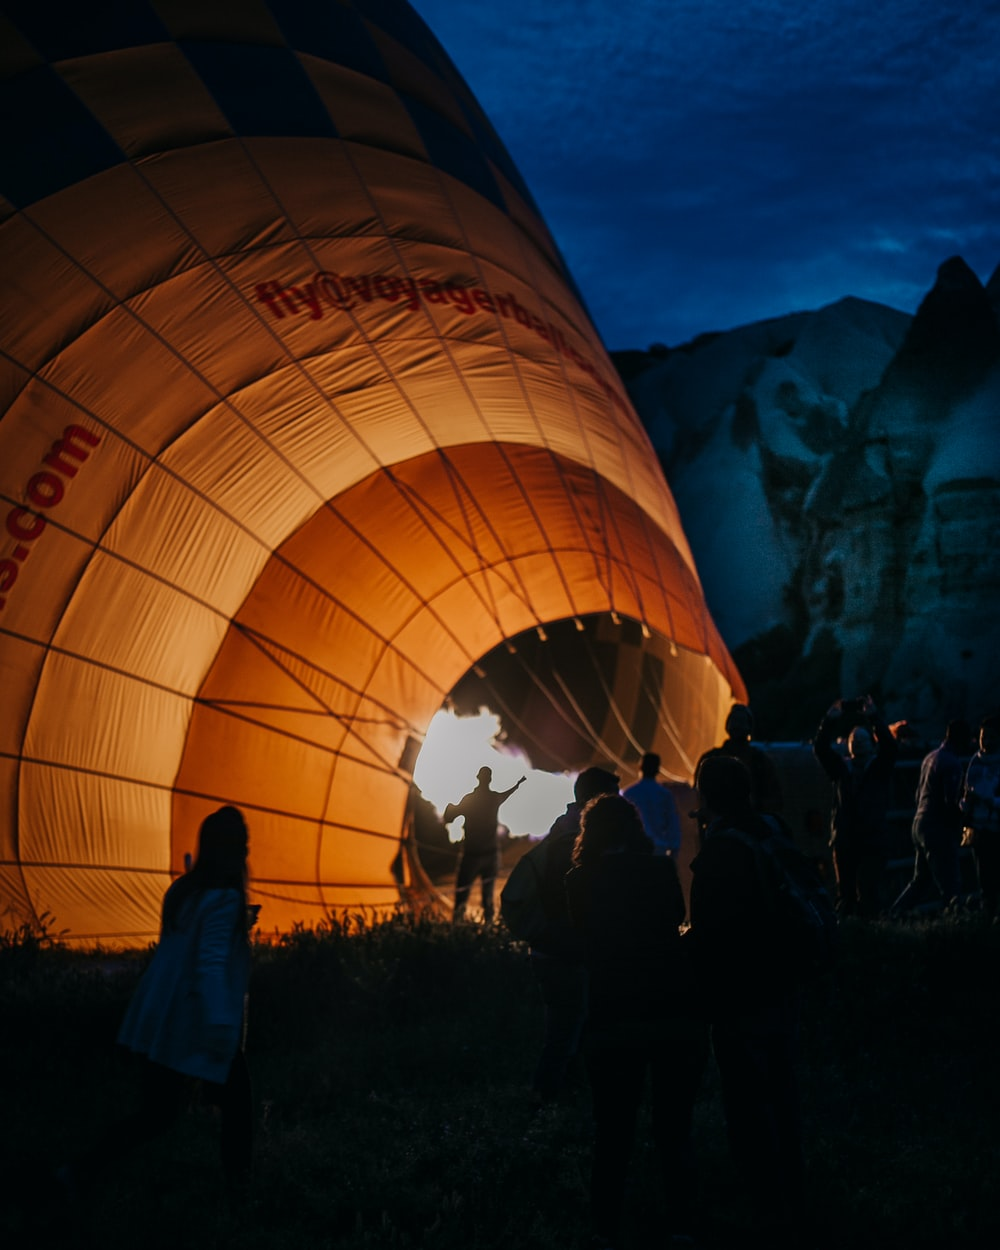 people standing on hot air balloon